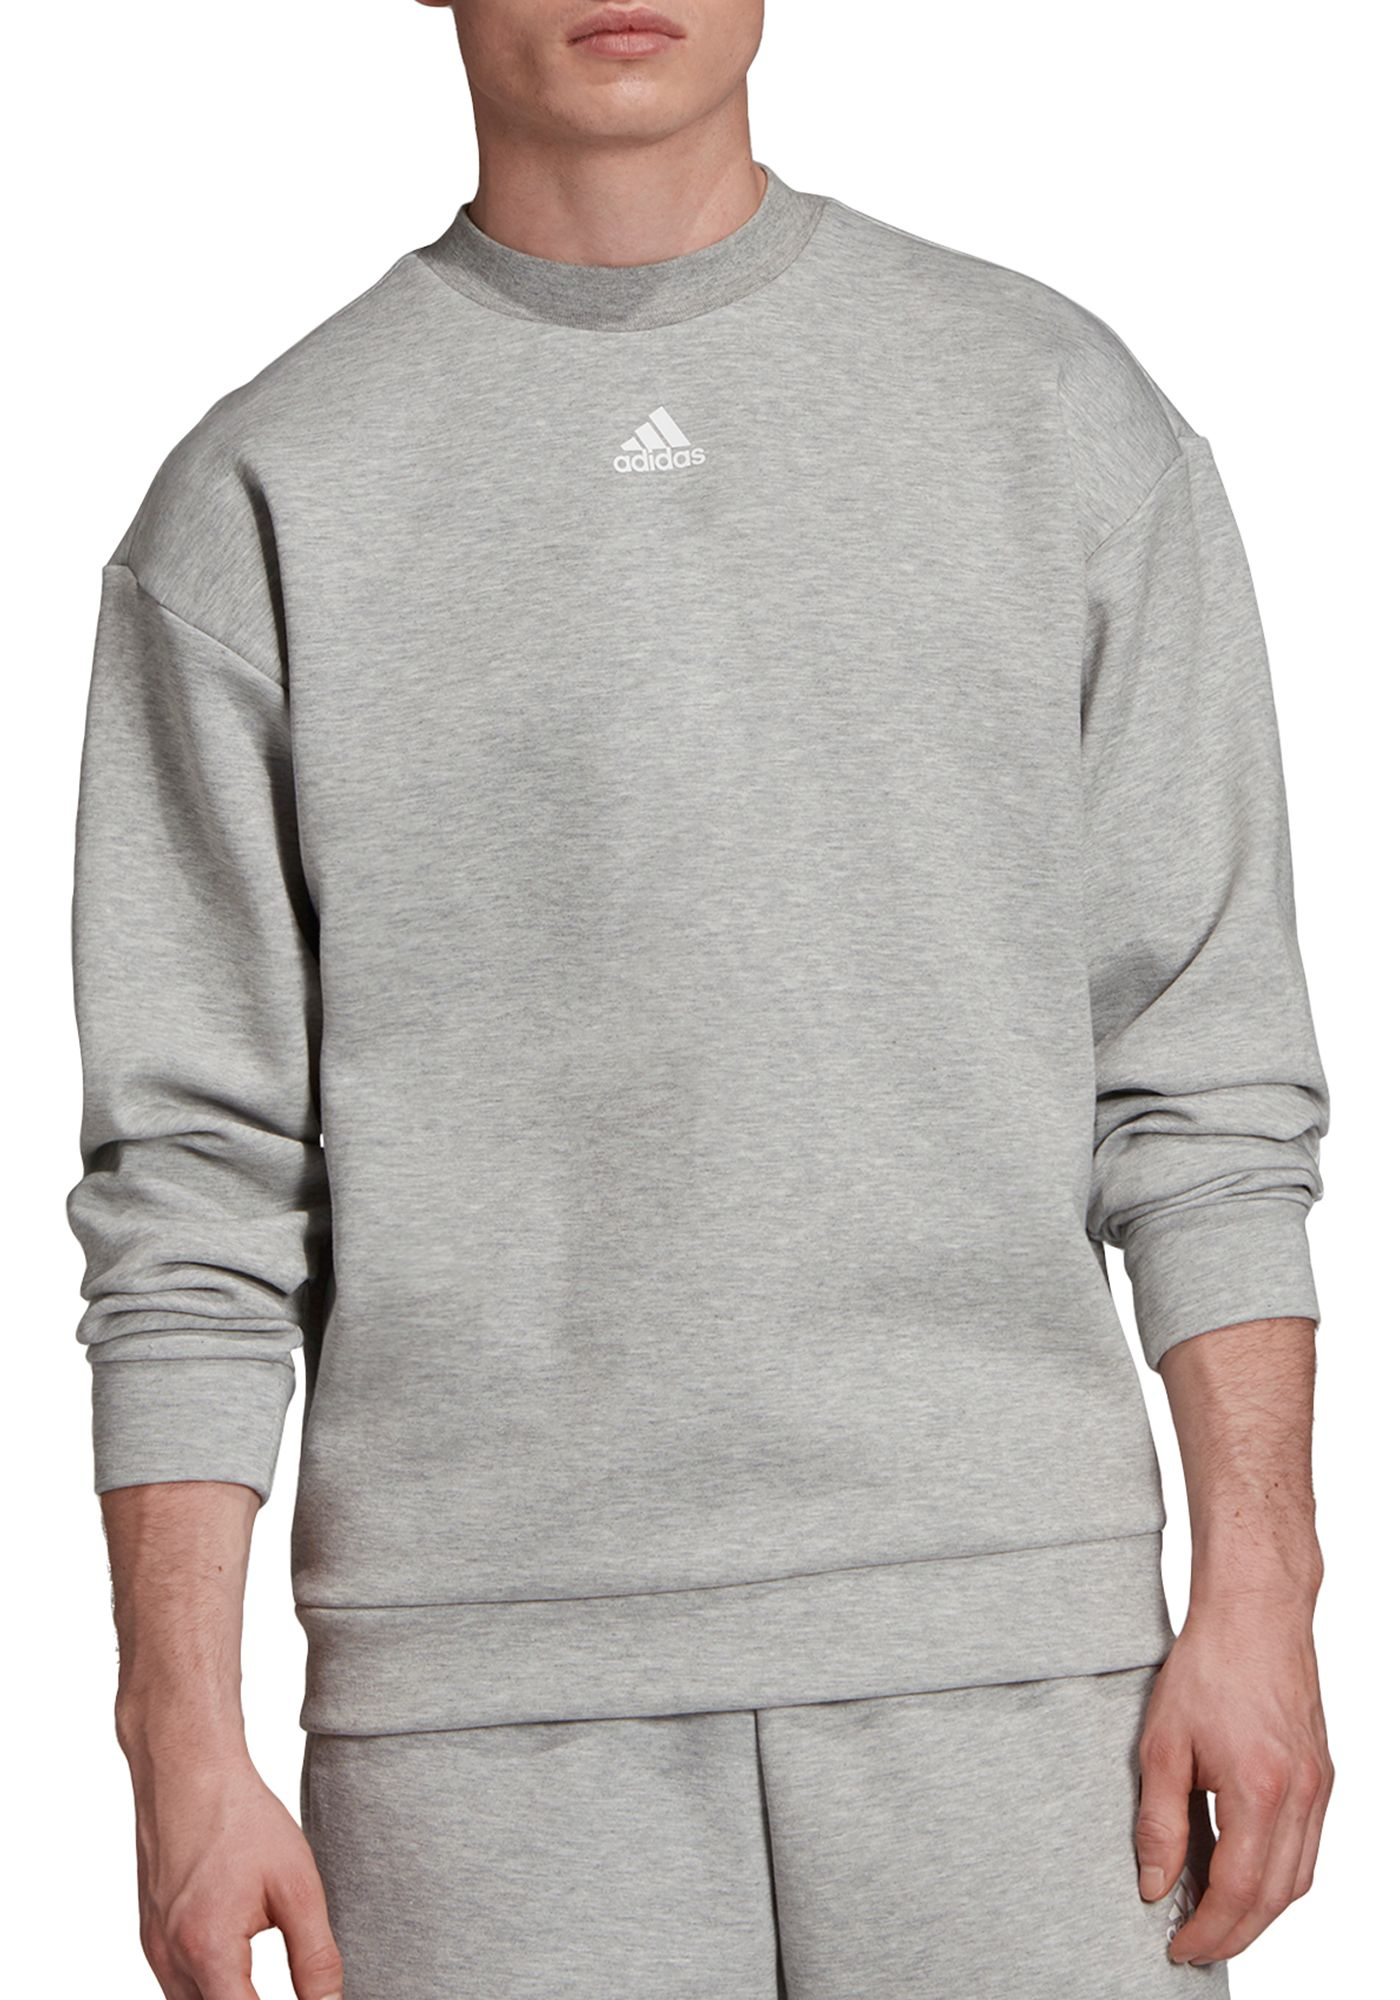 adidas Men's Must Haves 3-Stripes Crew Sweatshirt